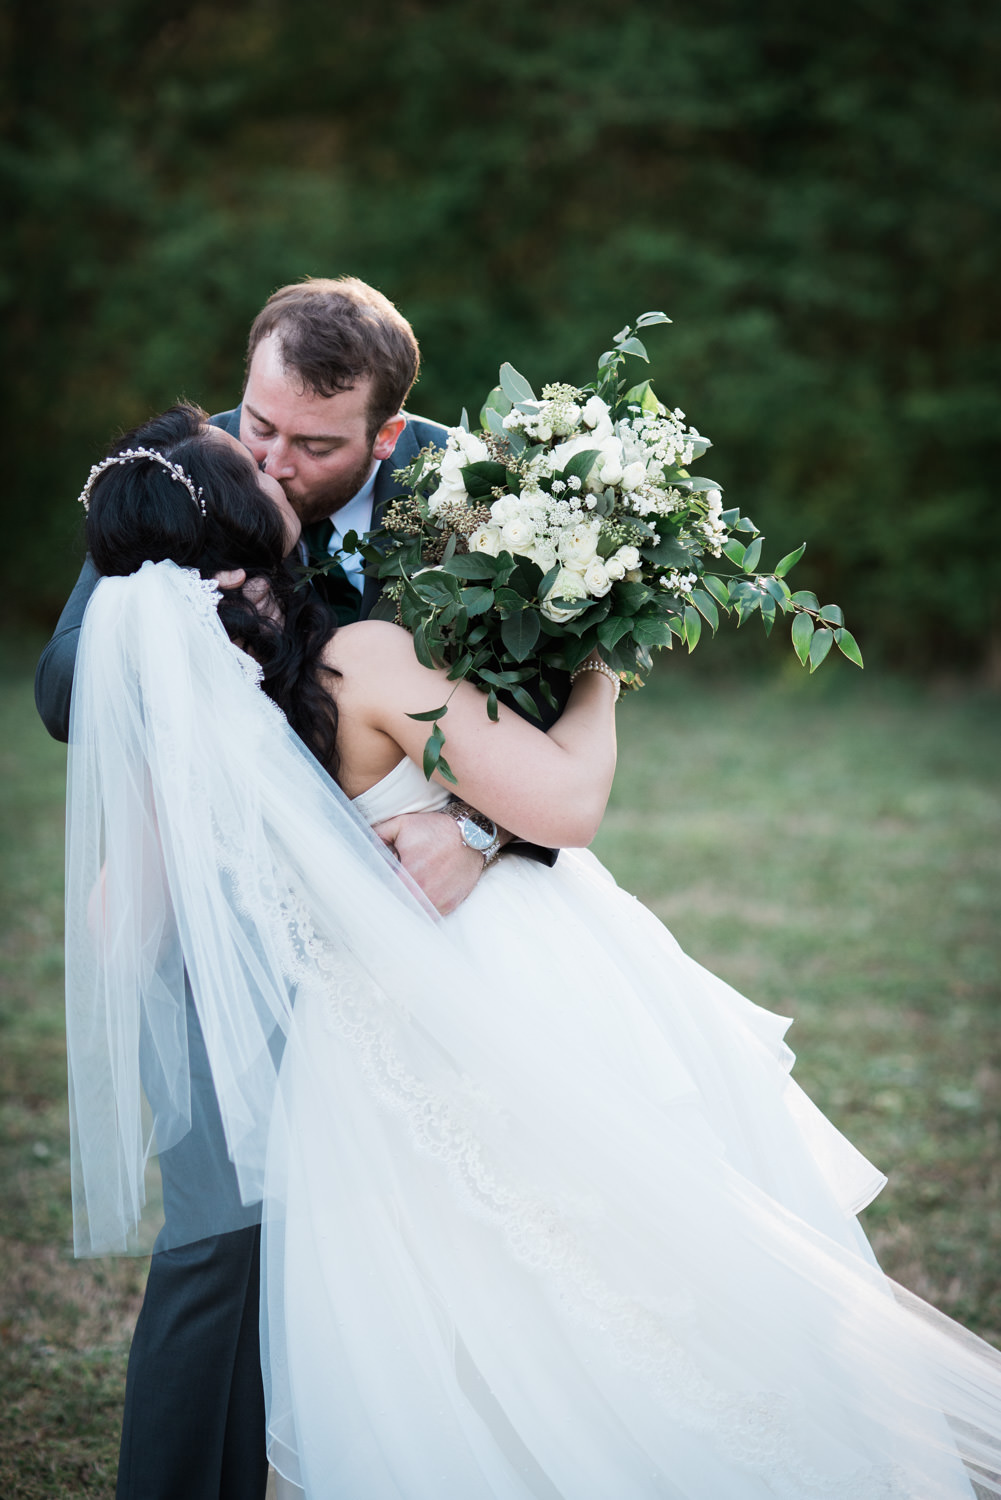 Atlanta-wedding-photographer-82.jpg